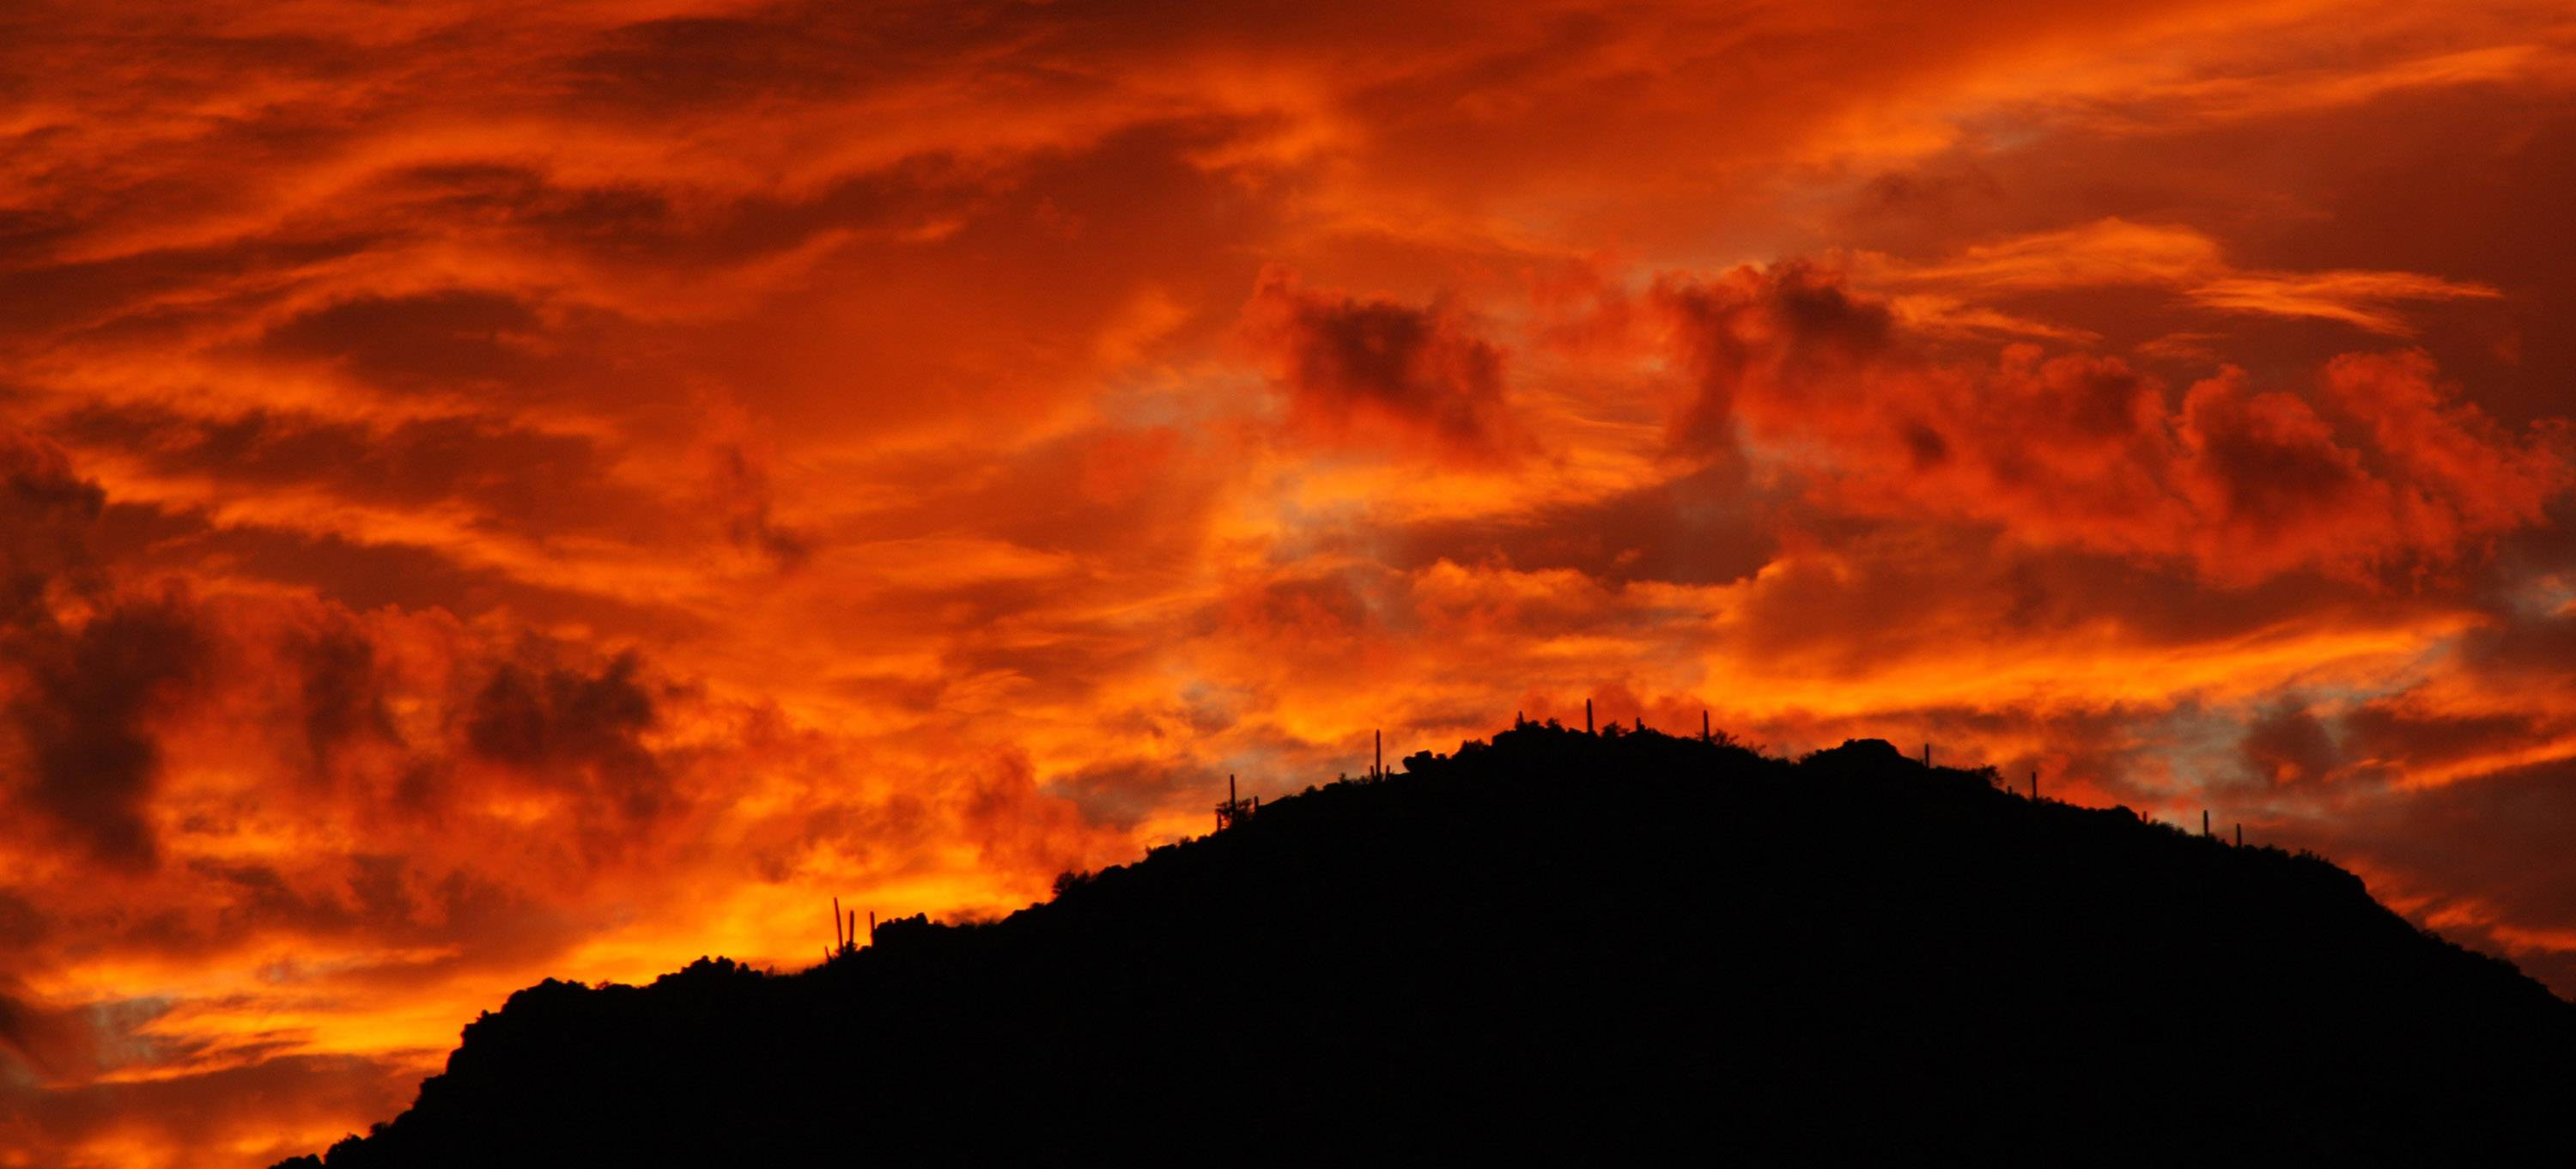 The saguaro cactus stand tall along the edge of a mountain in Tucson Mountain Park as the sky was ablaze in Tuscon, Arizona on November 14.